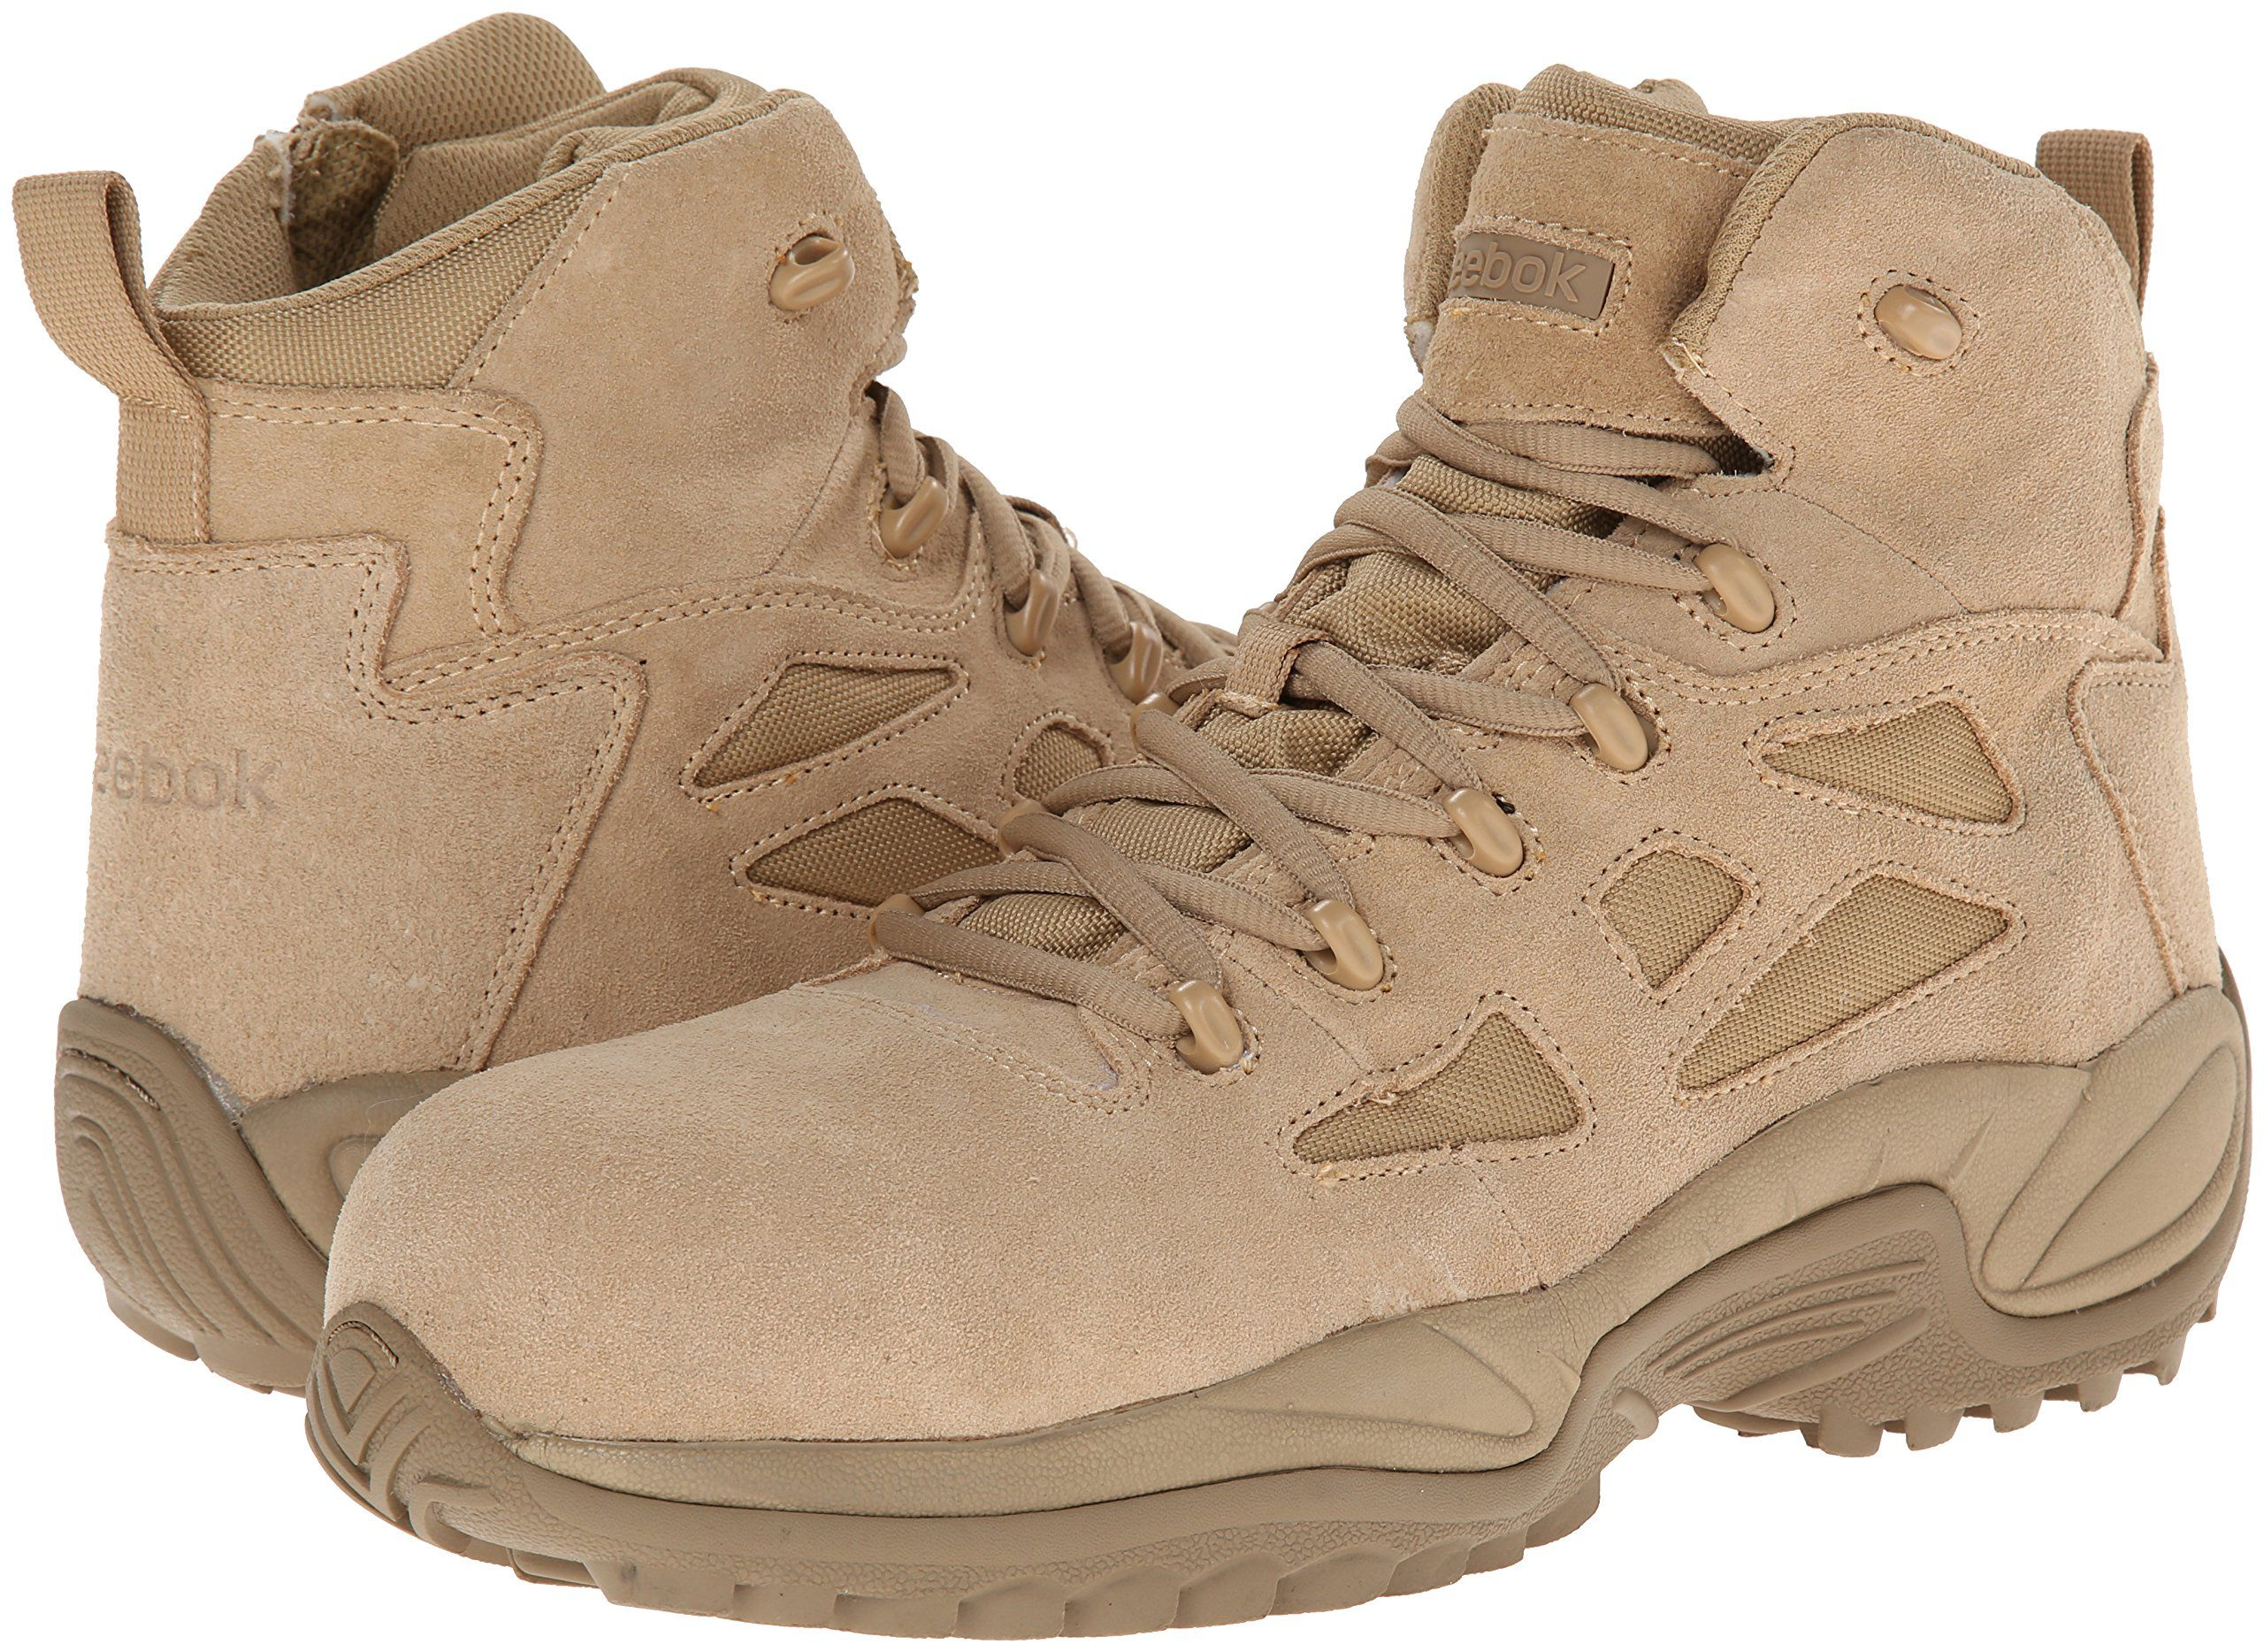 pin by annastookey on work boots for men work boots men on cheap insulated coveralls for men id=63054